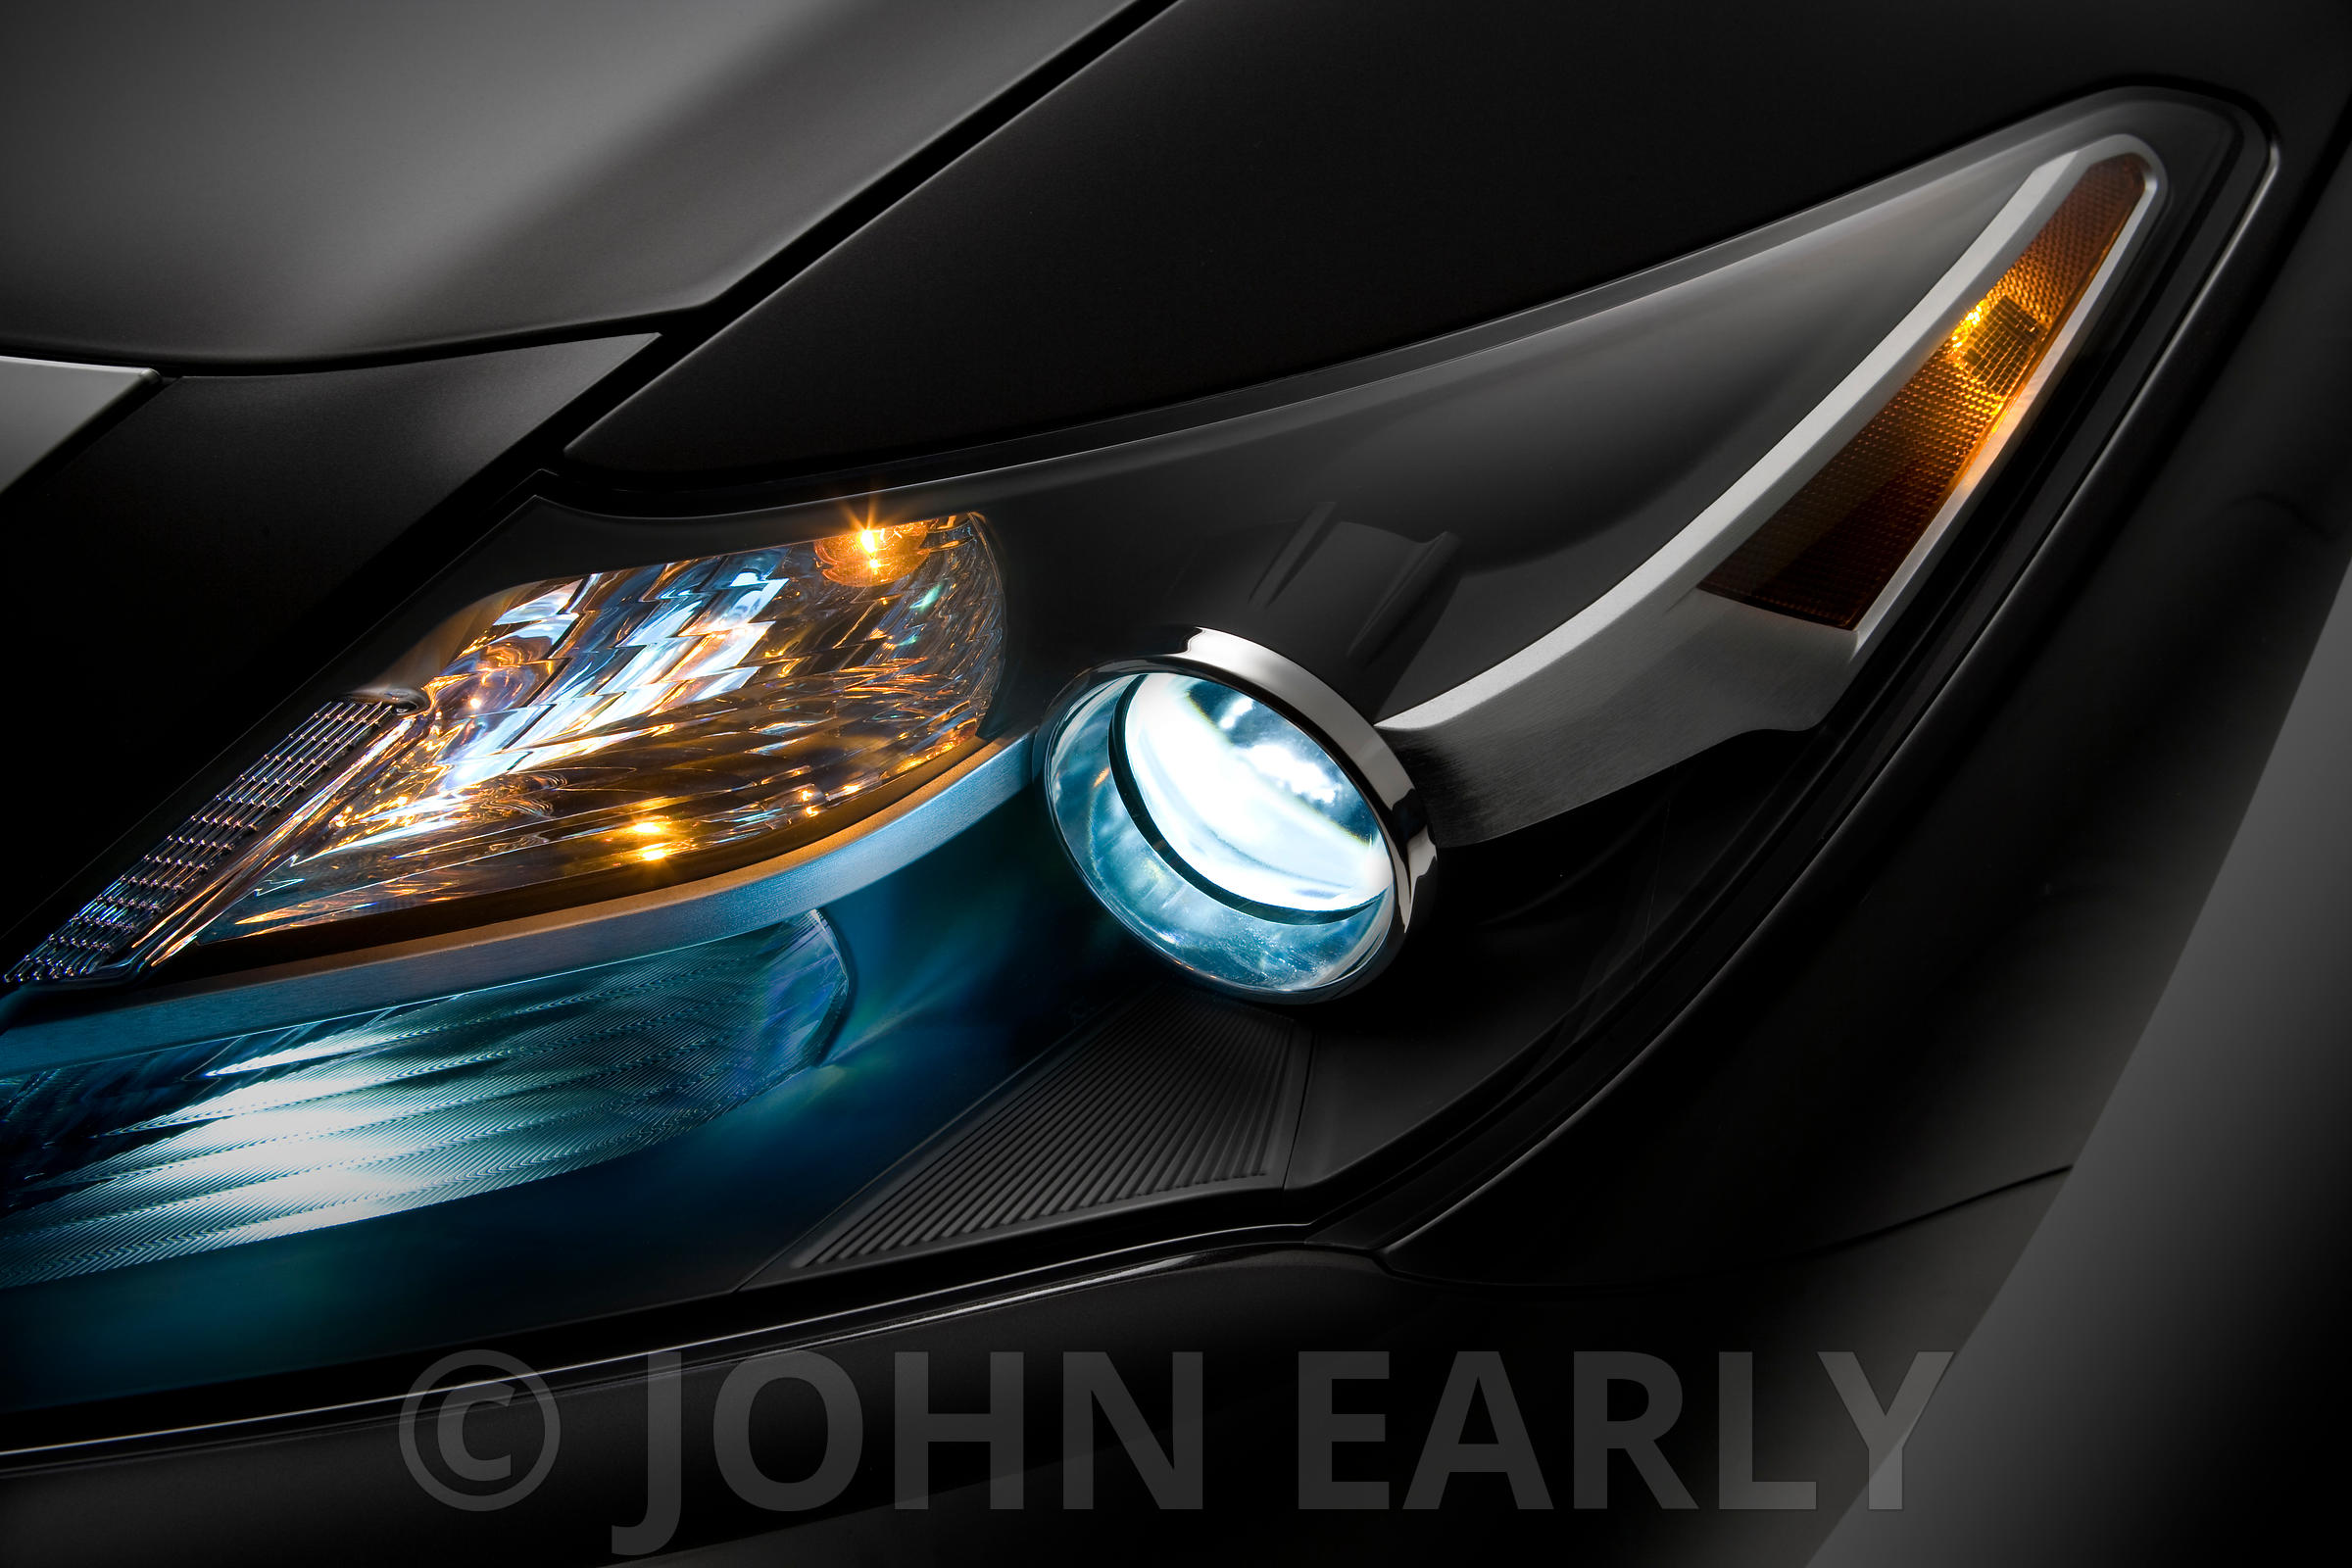 Moody LED Headlight Detail on a Black Car